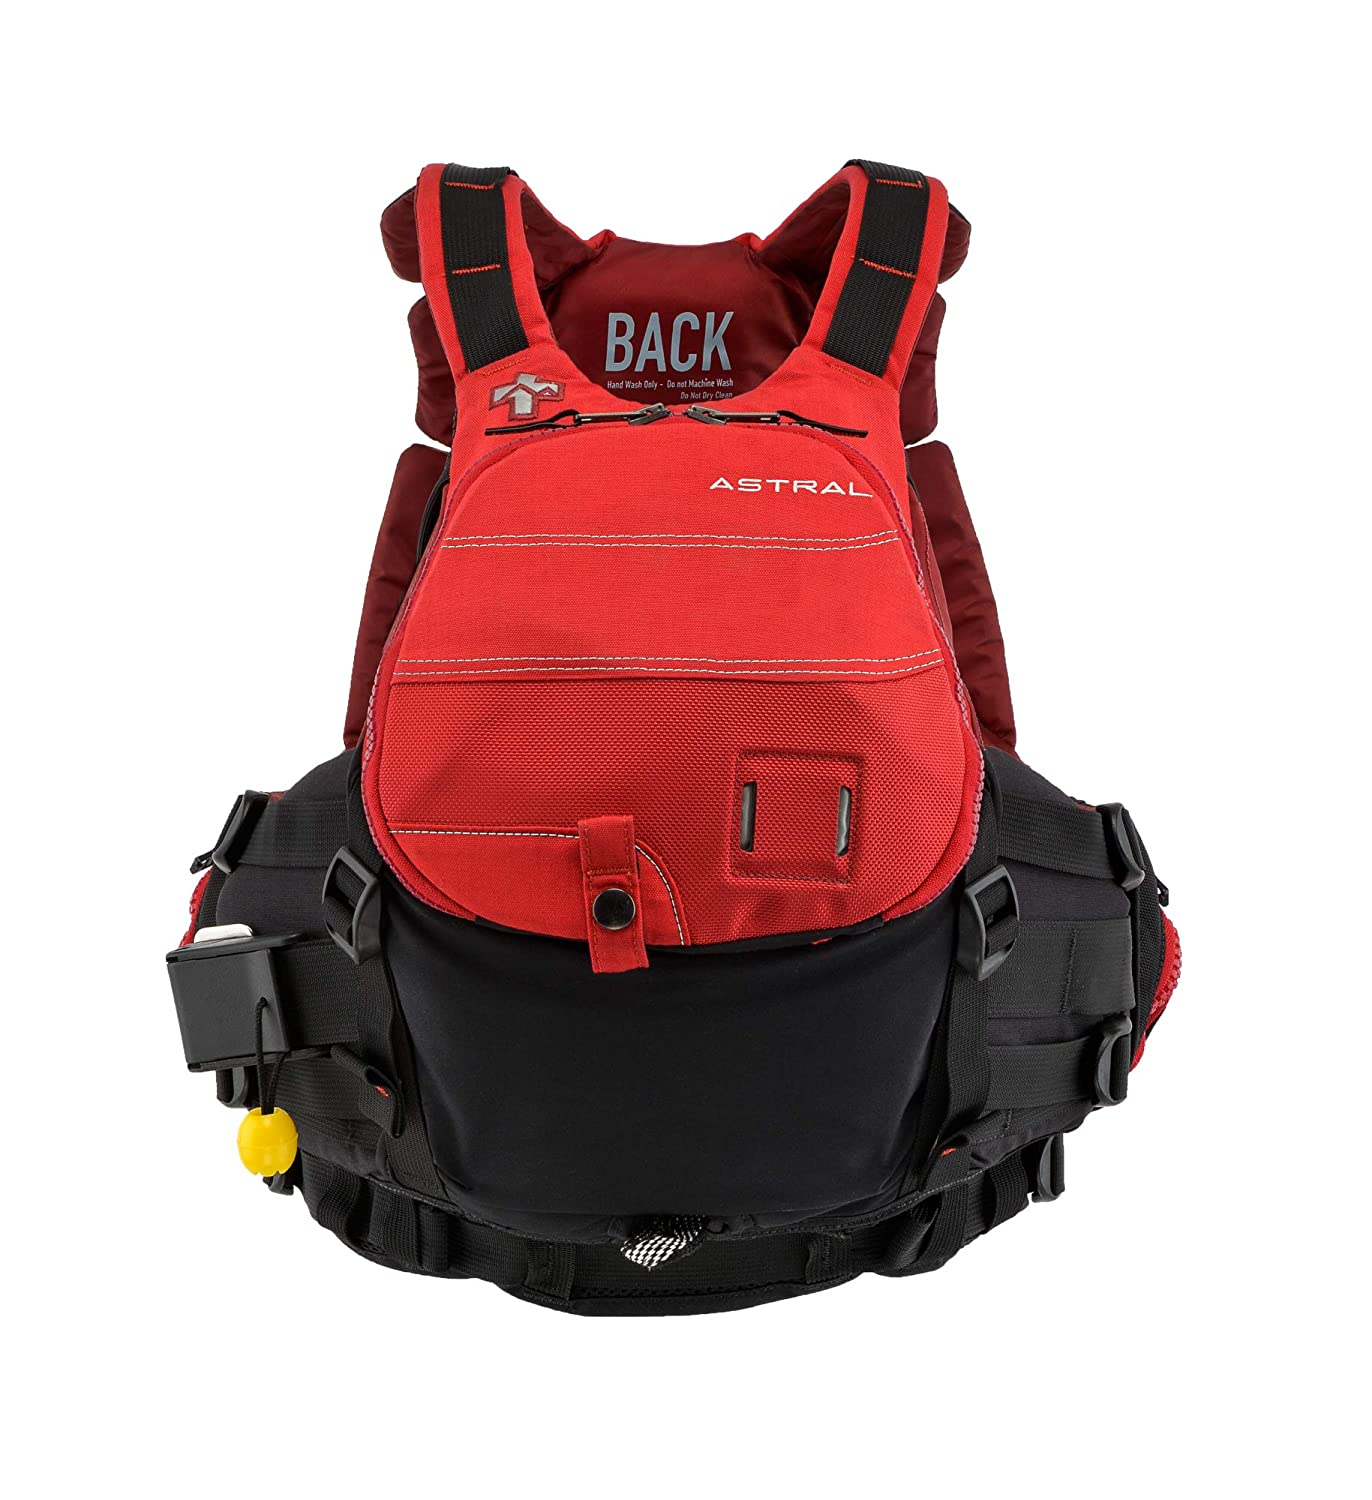 Astral Greenjacket PFD B01BMW9QAE Cherry Creek Medium/Large Medium/Large|Cherry Creek